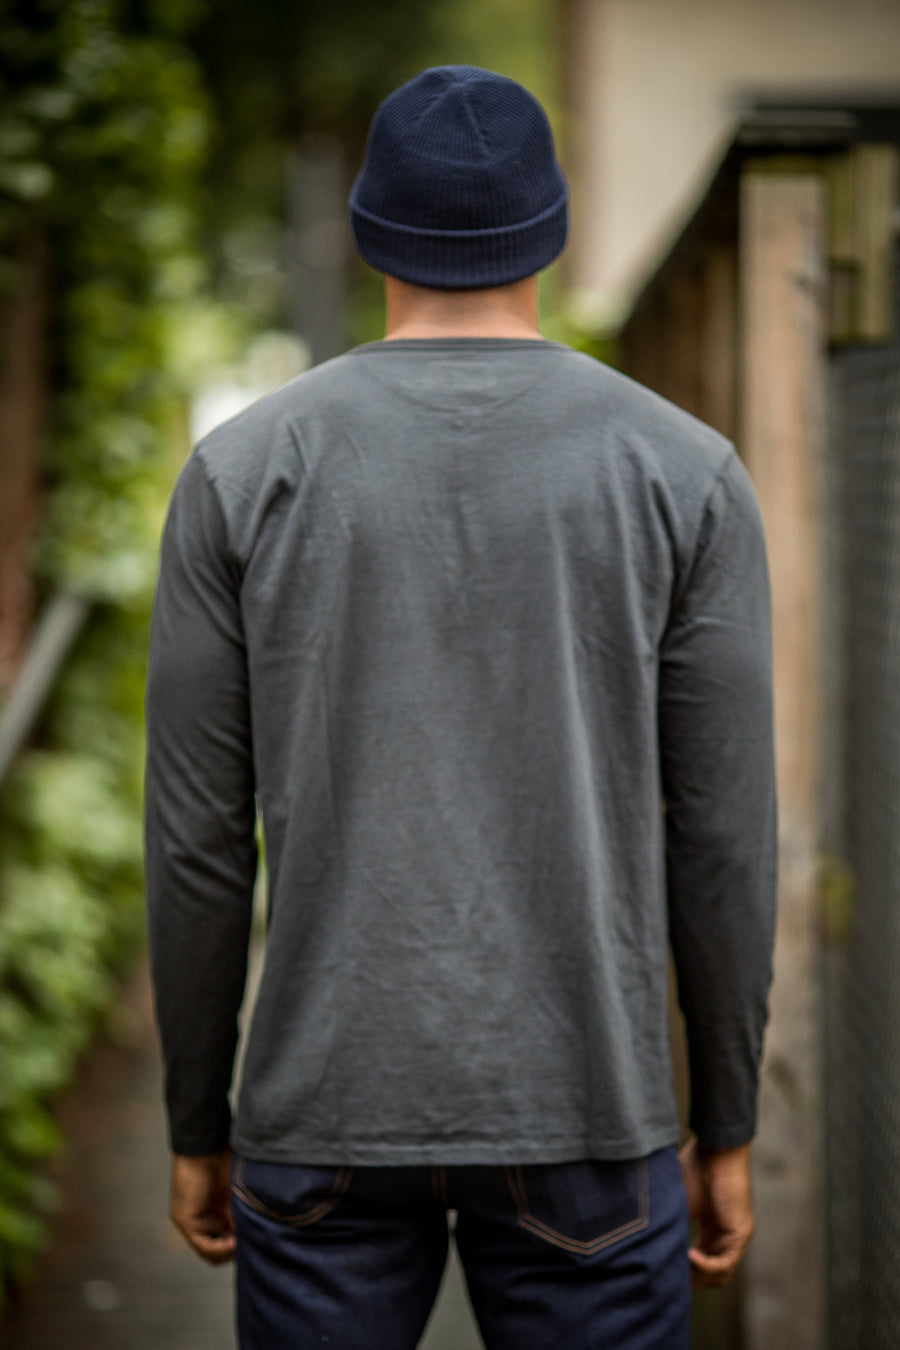 Knickerbocker MFG Co. L/S Henley Tube Tee - Sunfade Black - Franklin & Poe